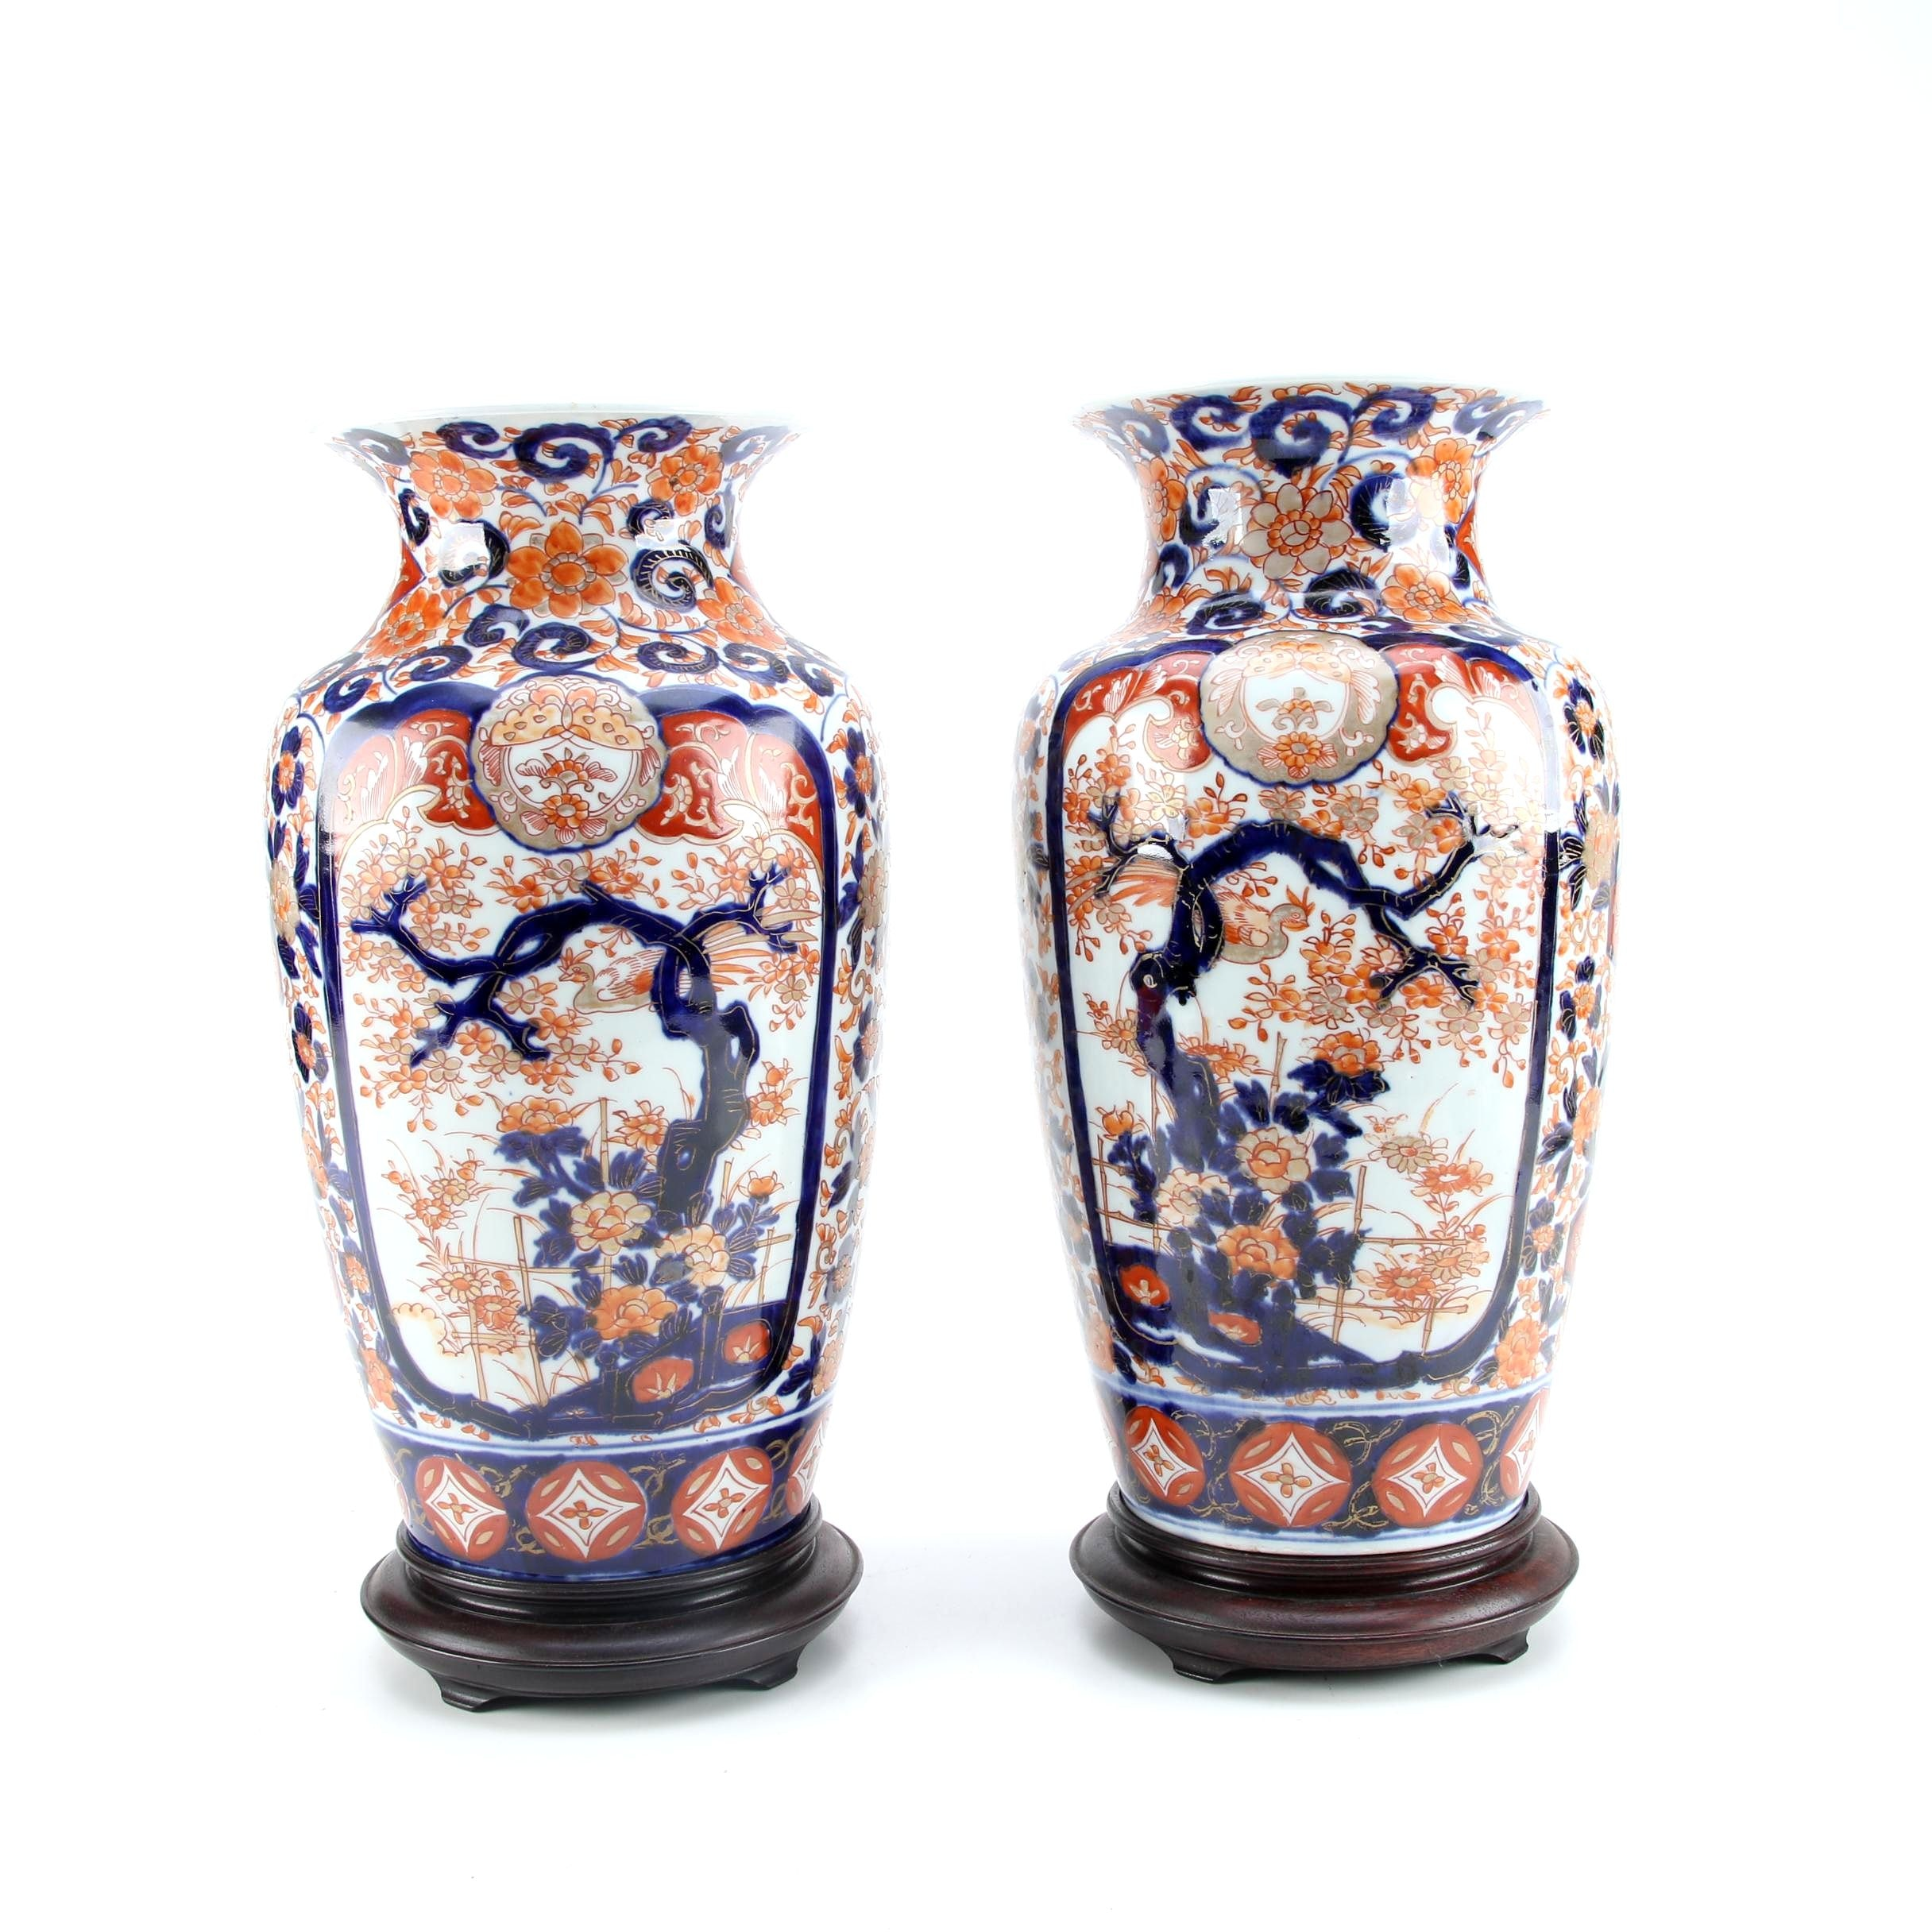 Japanese Imari Porcelain Vases and Stands